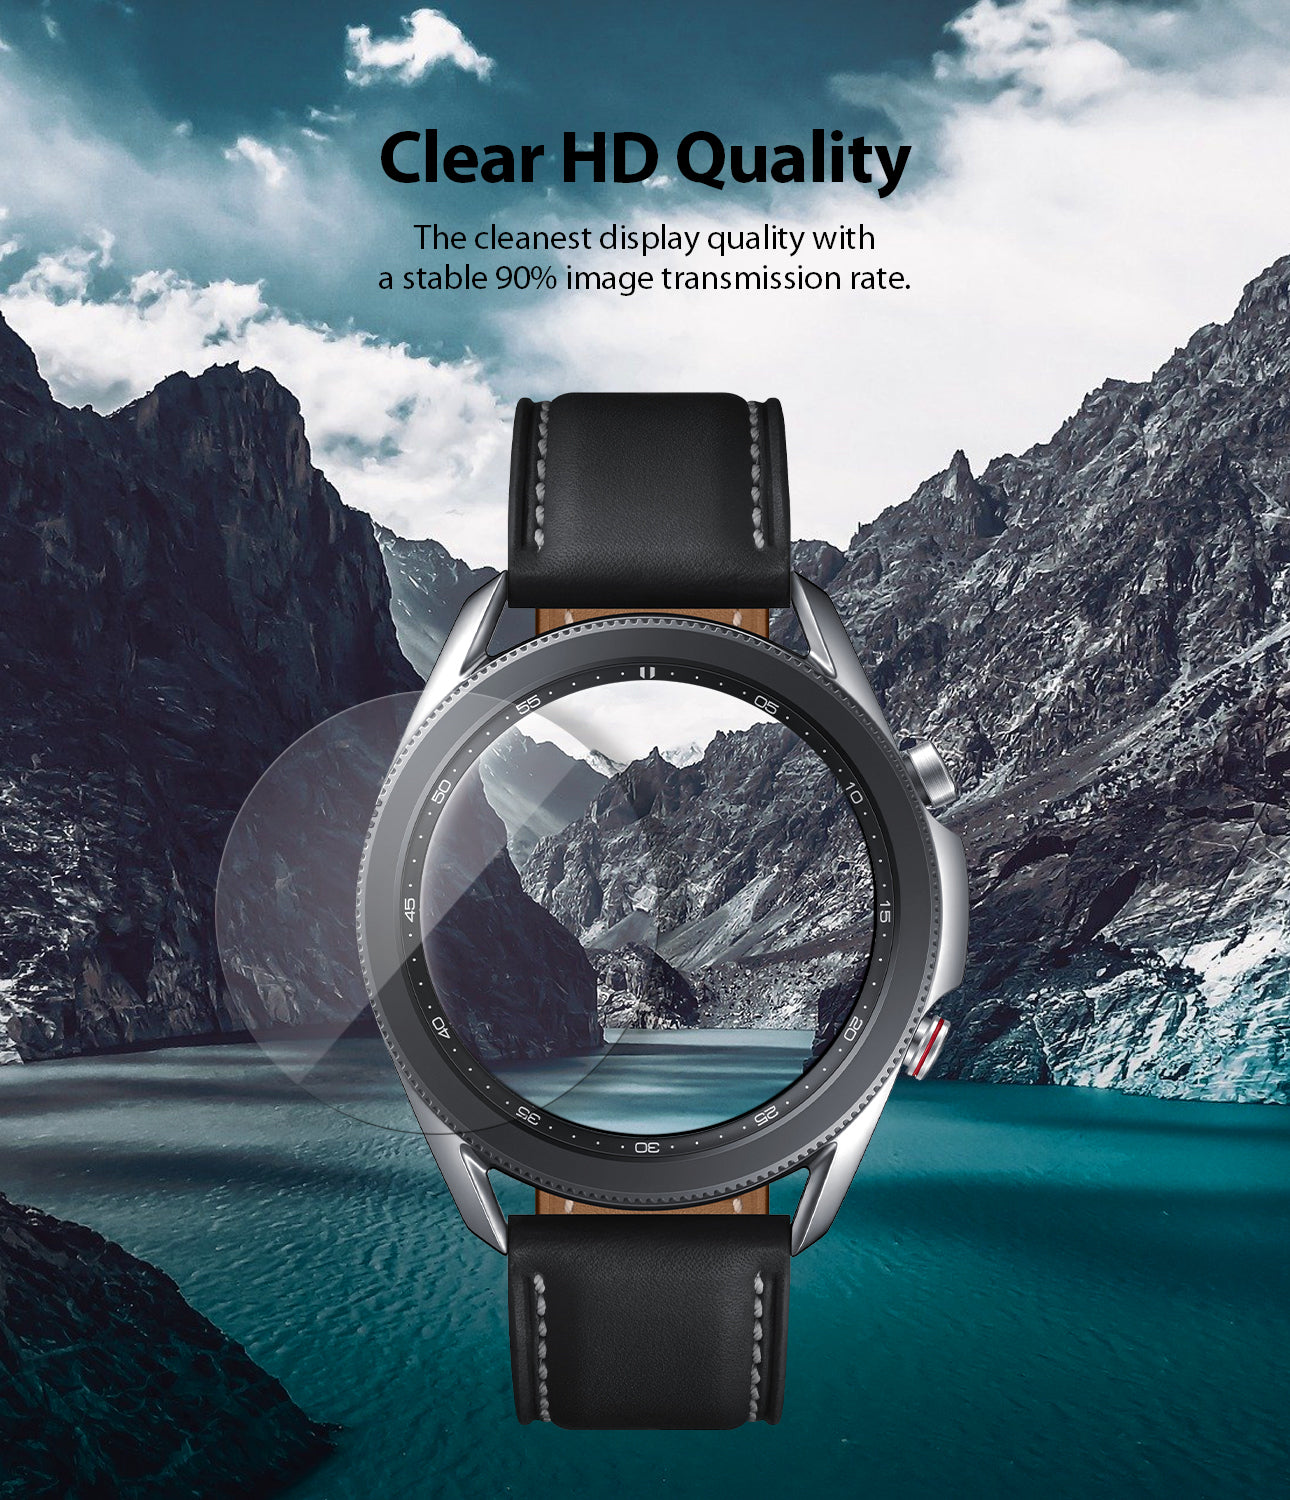 the cleanest display quality with a stalbe 90% image transmission rate